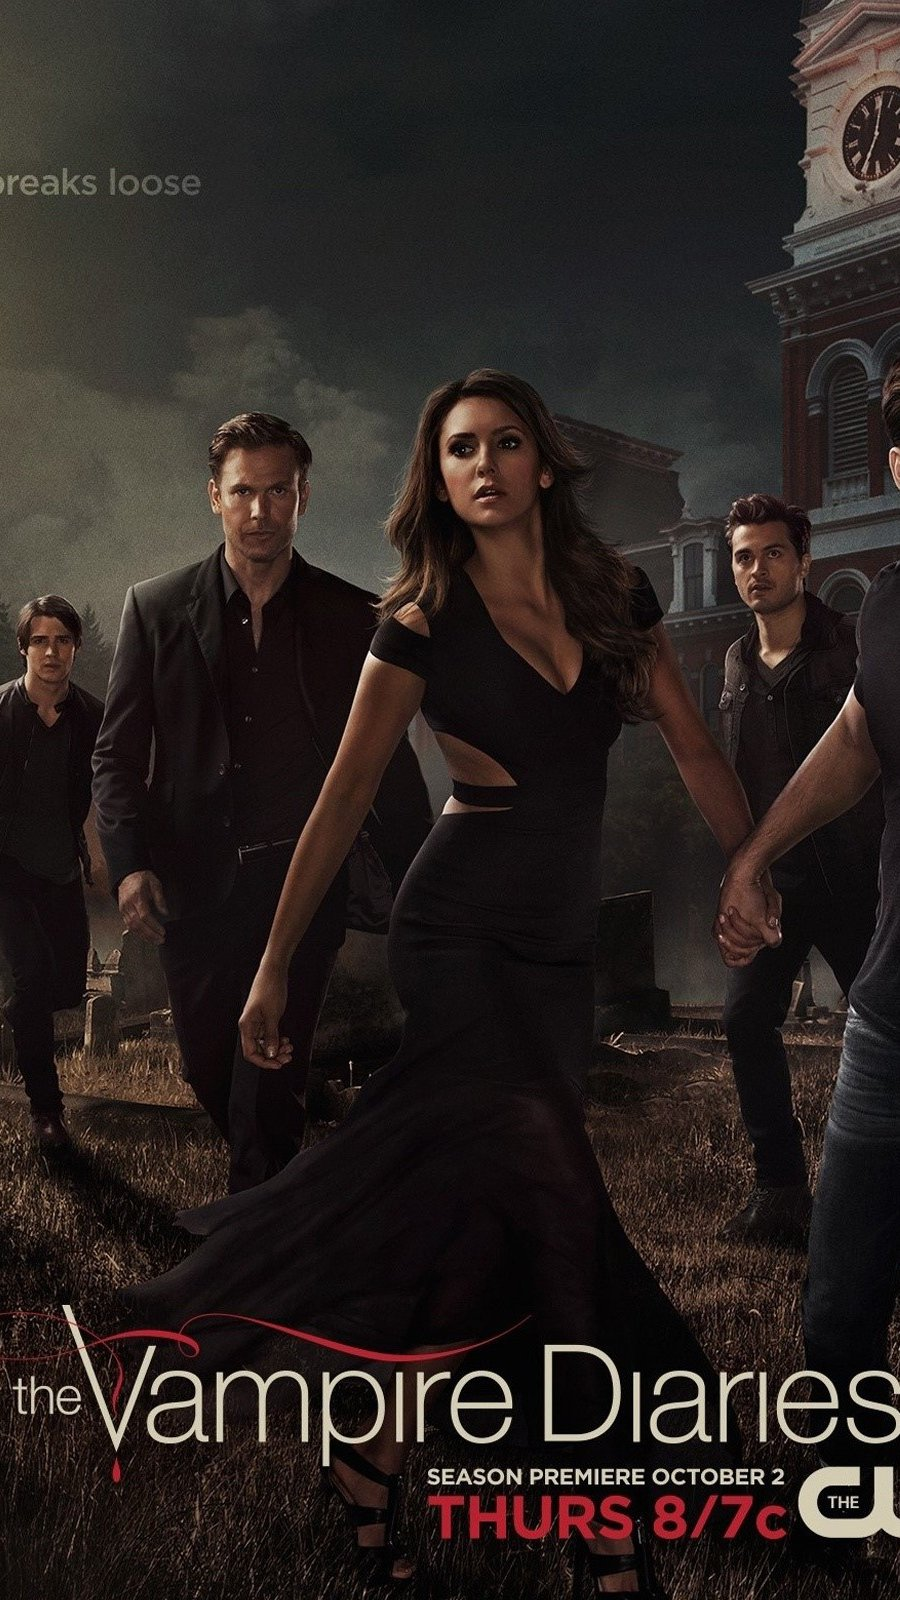 Fondos de pantalla The vampire Diaries still de la temporada 6 Vertical